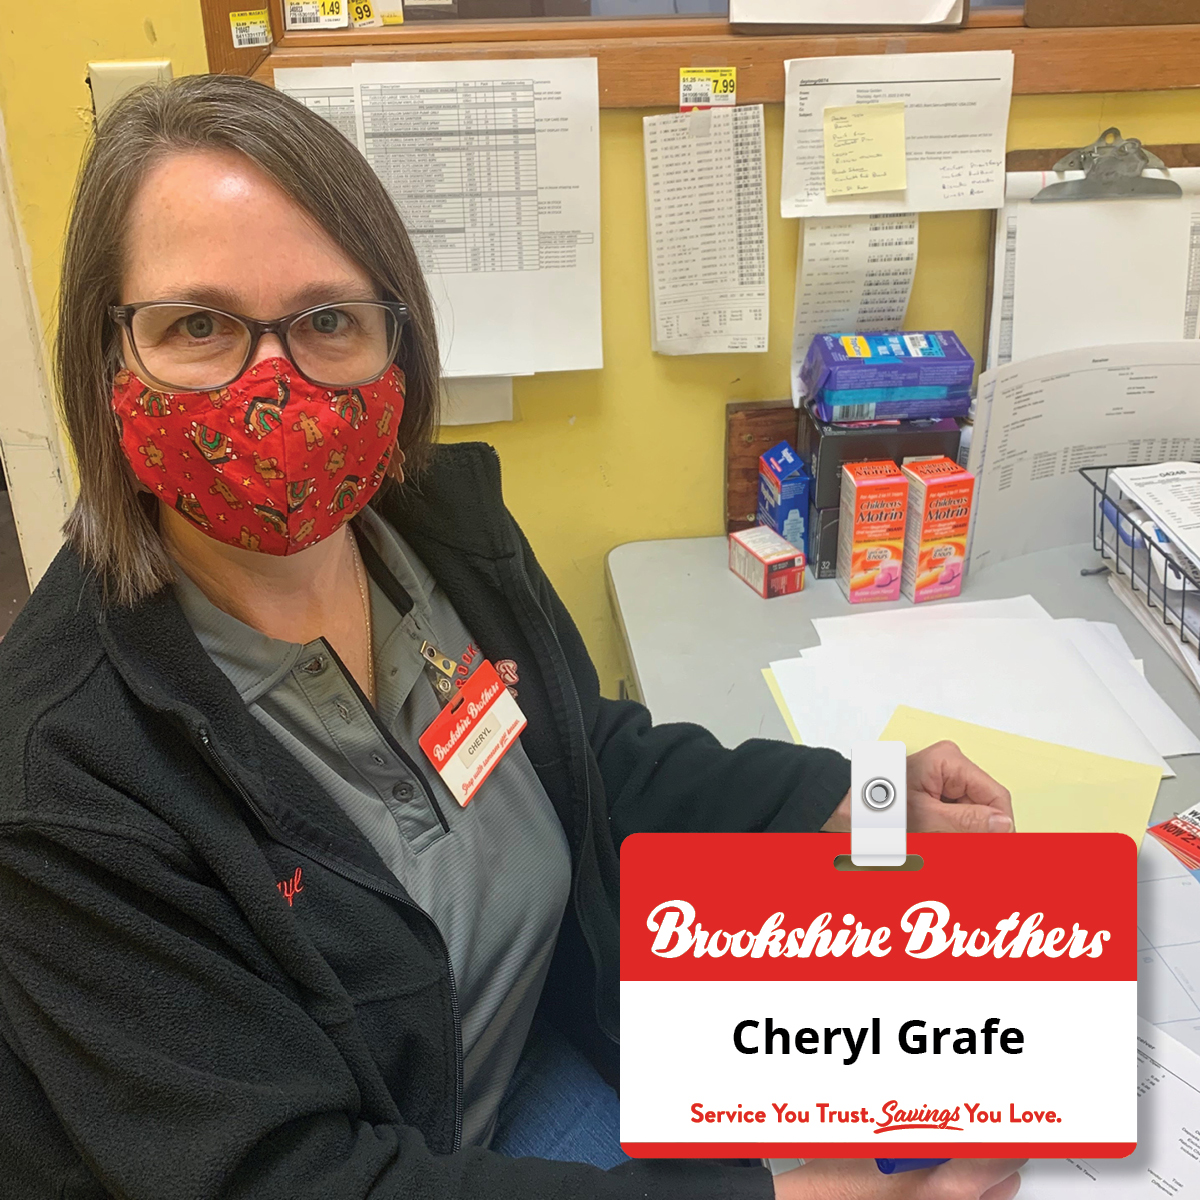 Our unsung hero! Though she is behind the scenes DSD Manager Cheryl Grafe has been consistently providing superior customer... Read more: brookshirebrothers.com/employee-kudos… #Congratulations #ShoutoutSunday #EmployeeRecognition #BBPartner #EmployeeOwned #YourCommunityGrocerSince1921